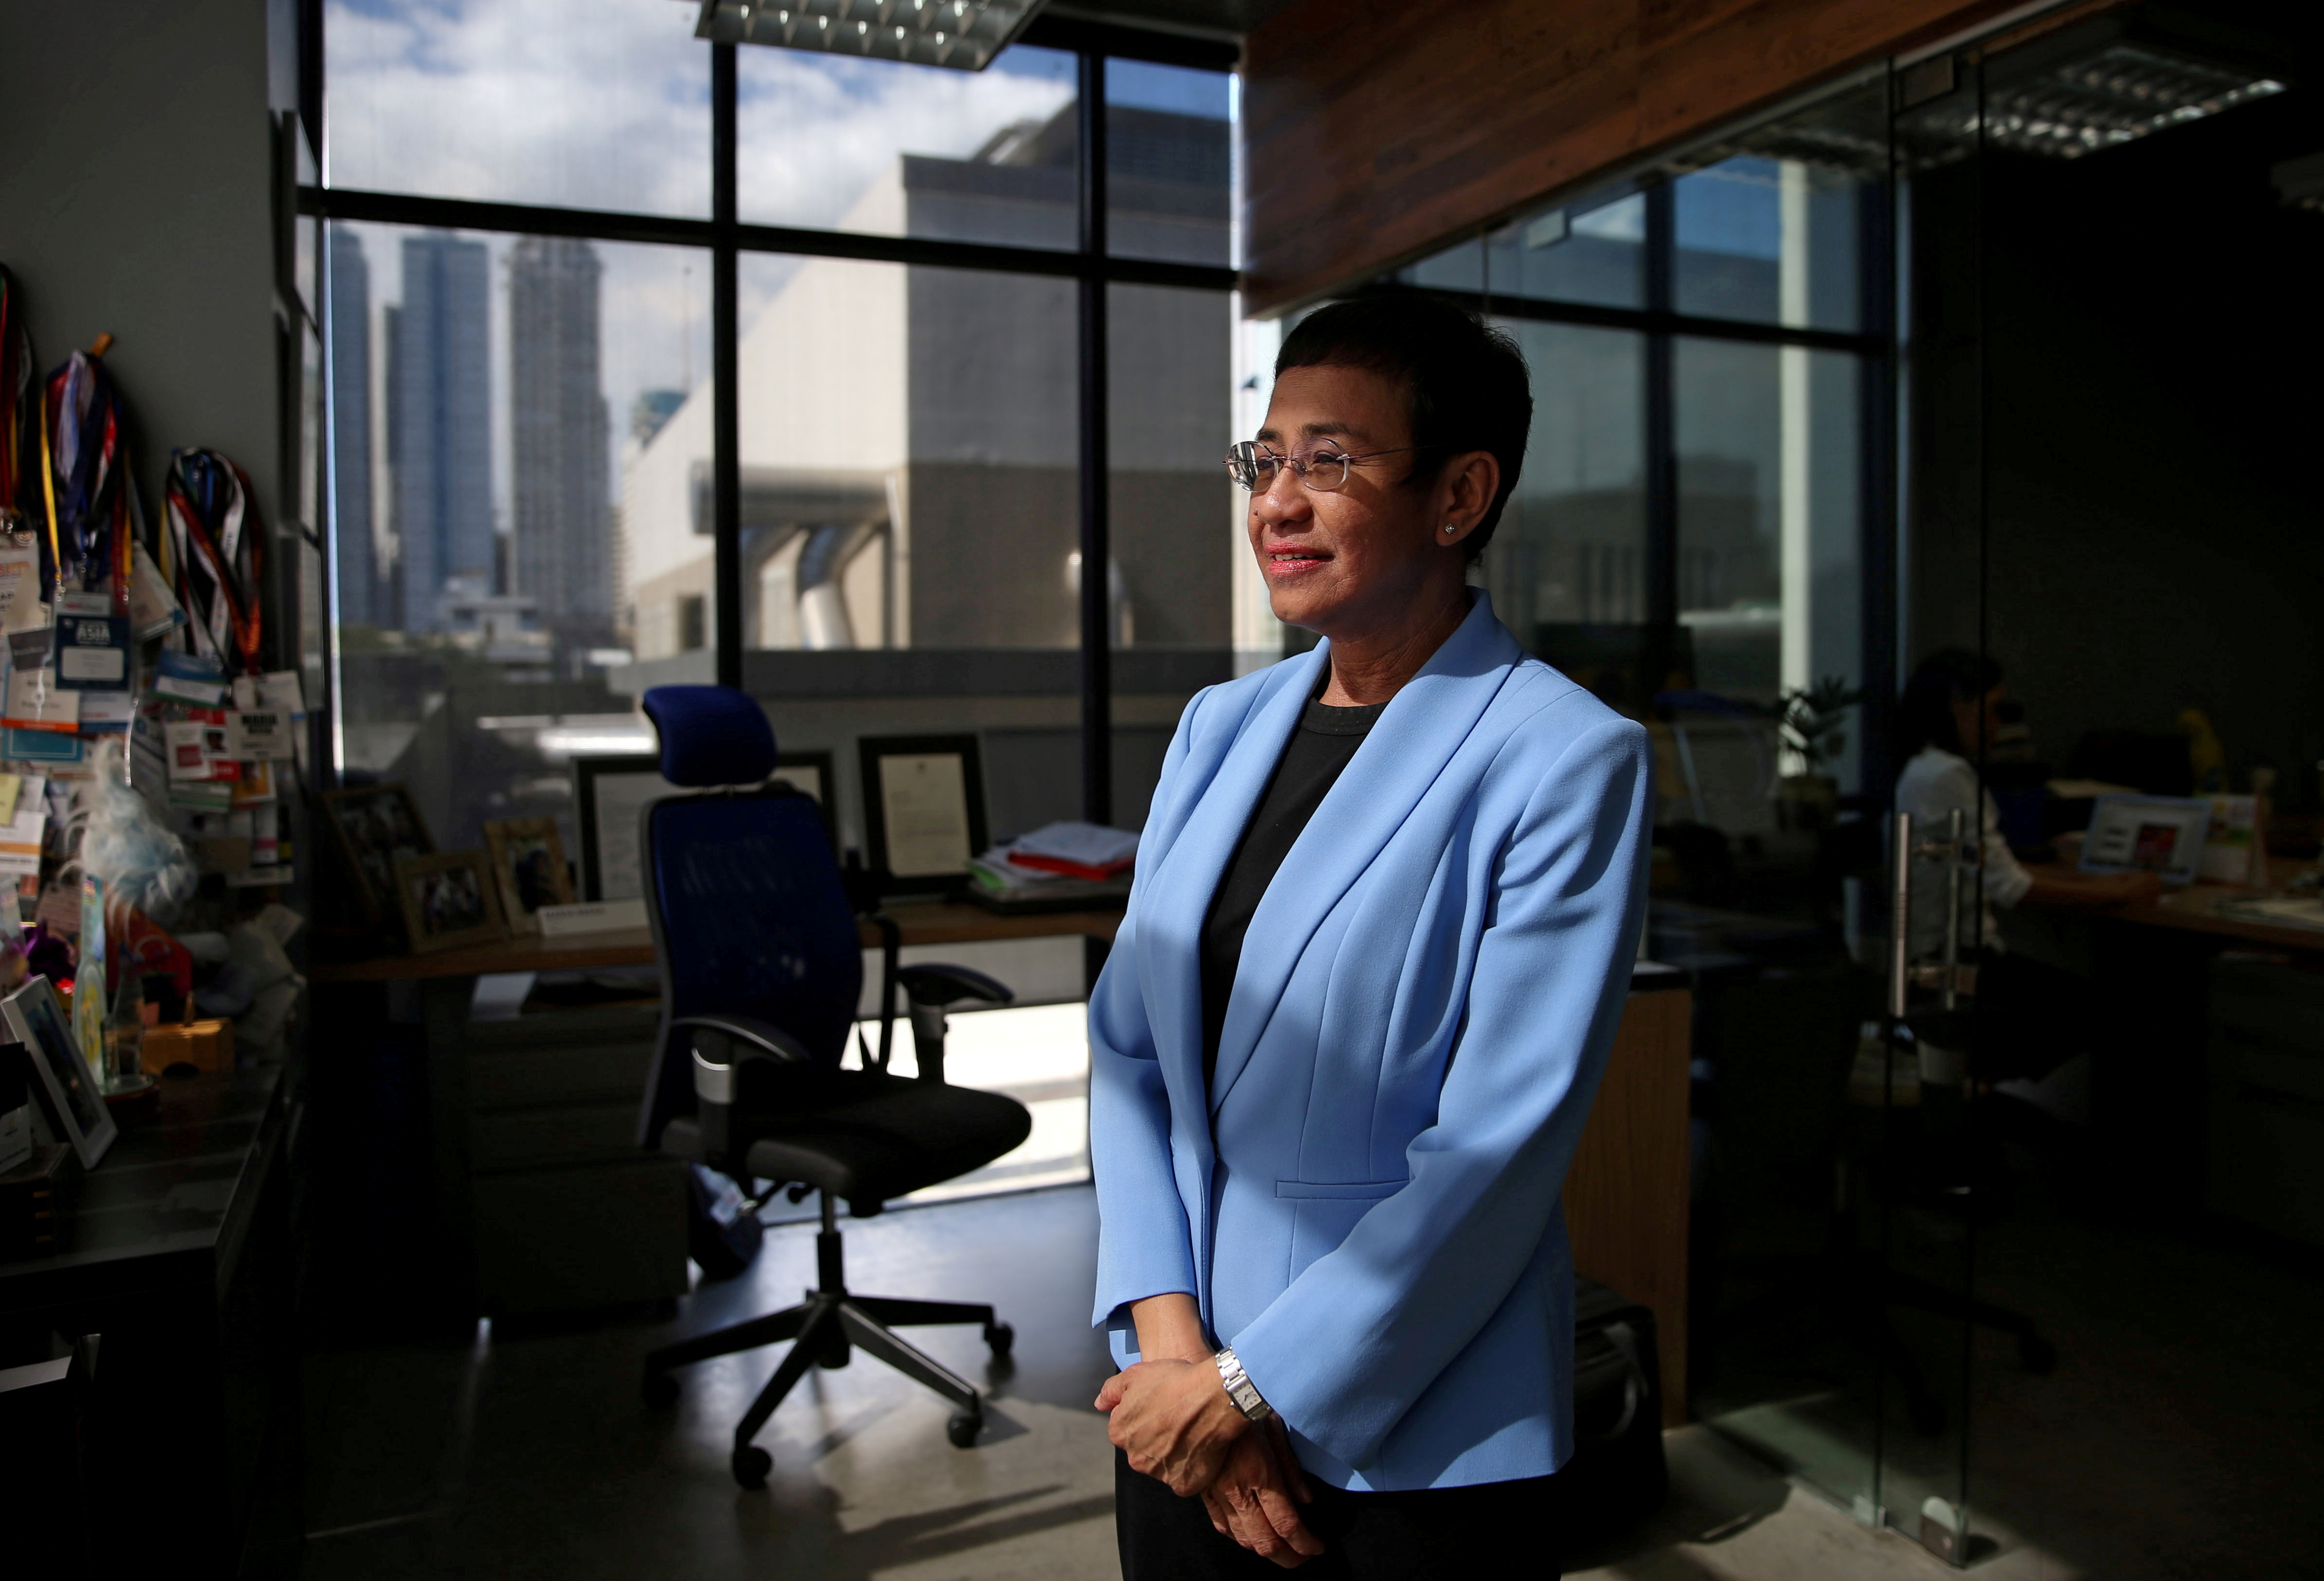 Maria Ressa, an executive of online news platform Rappler, poses at Rappler's office in Pasig City, Metro Manila, in Philippines, December 3, 2018. REUTERS/Eloisa Lopez//File Photo